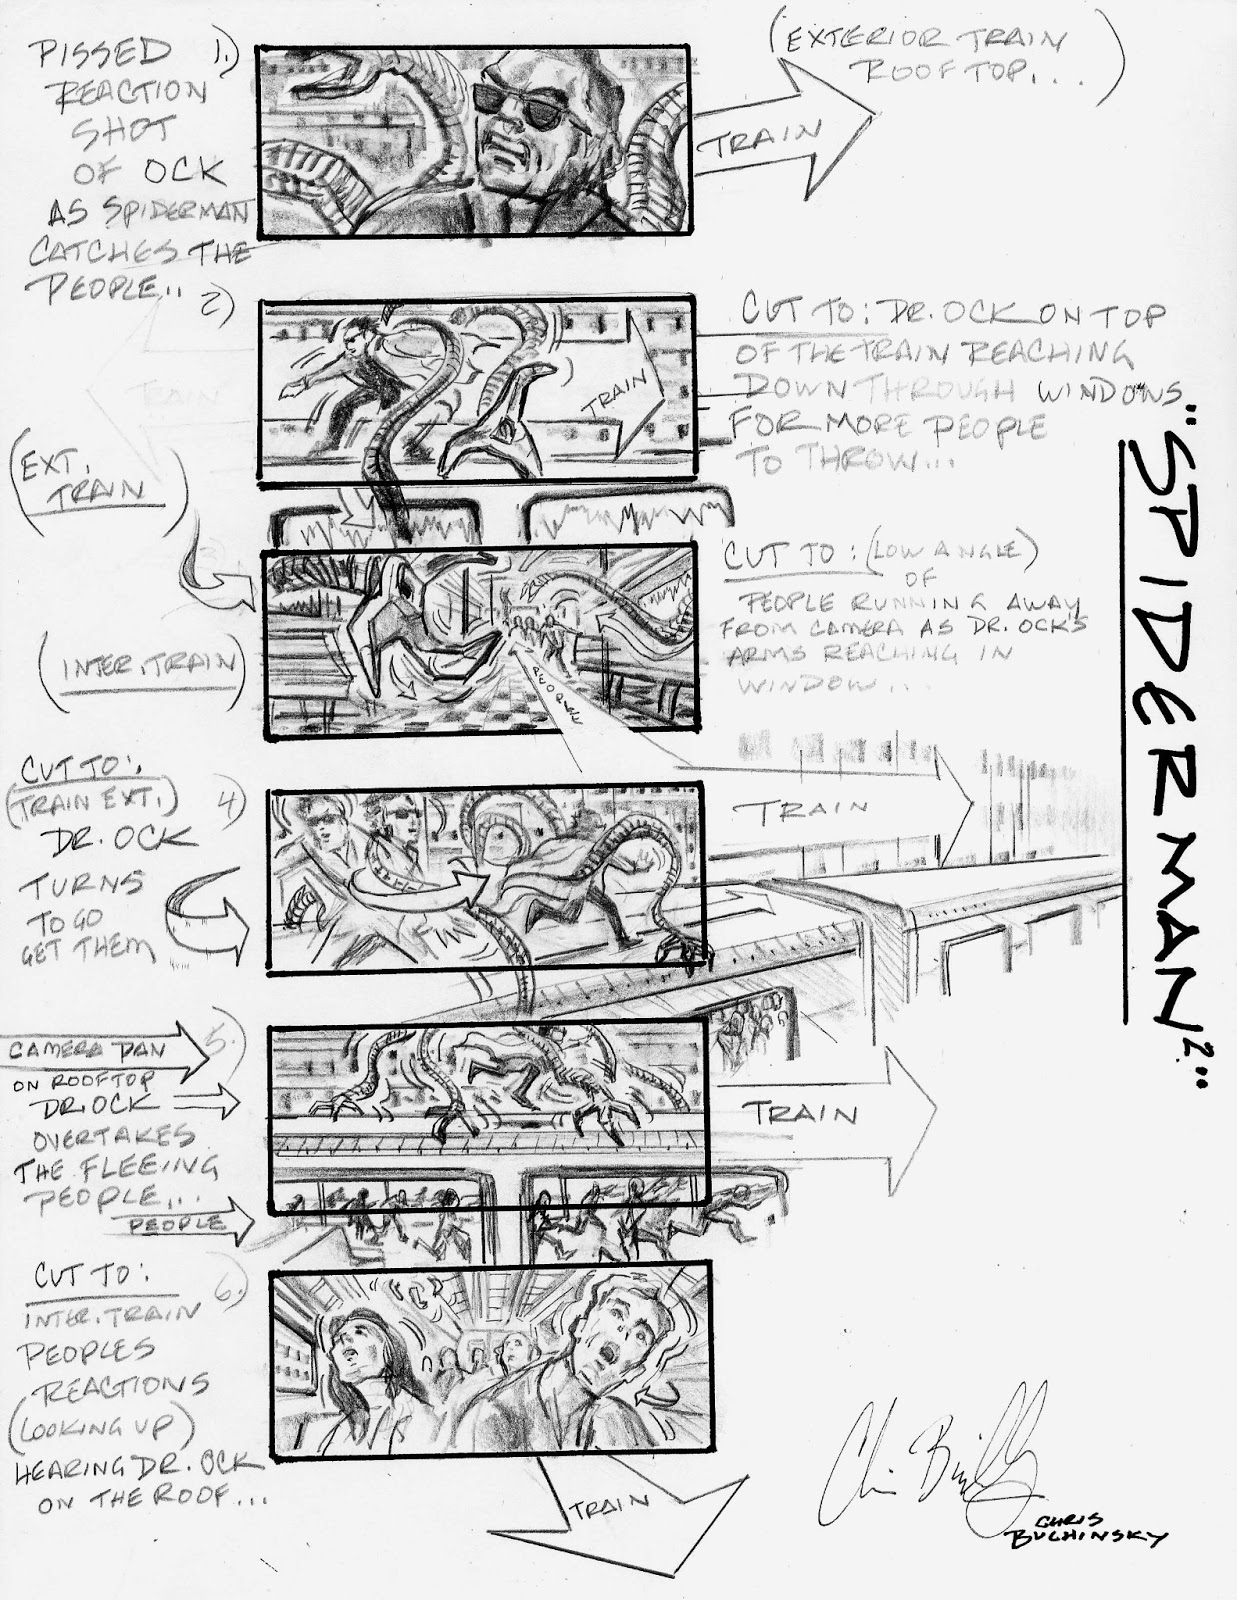 SPIDER MAN 2 Subway Train Attack Storyboards By Chris Buchinsky